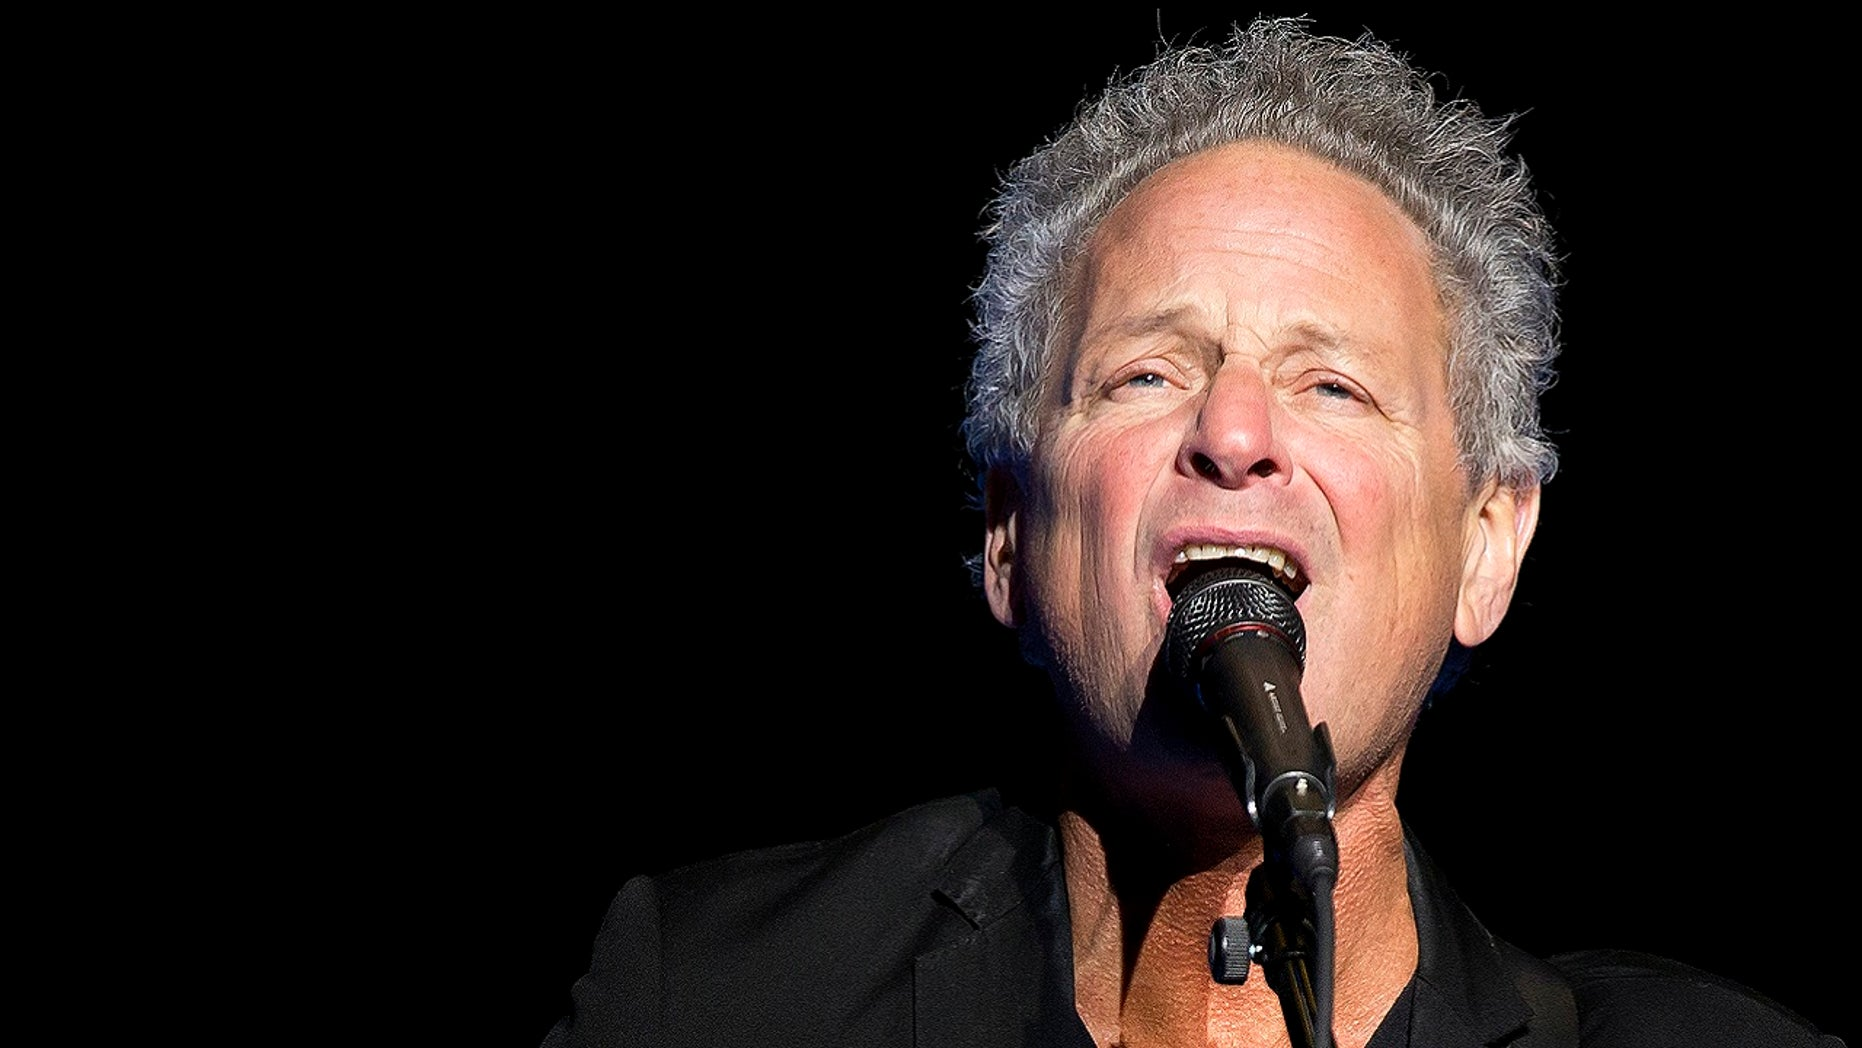 Lindsey Buckingham performs at the Wilbur Theatre in Boston, Wednesday, Dec. 5, 2018. (Invision via Associated Press)